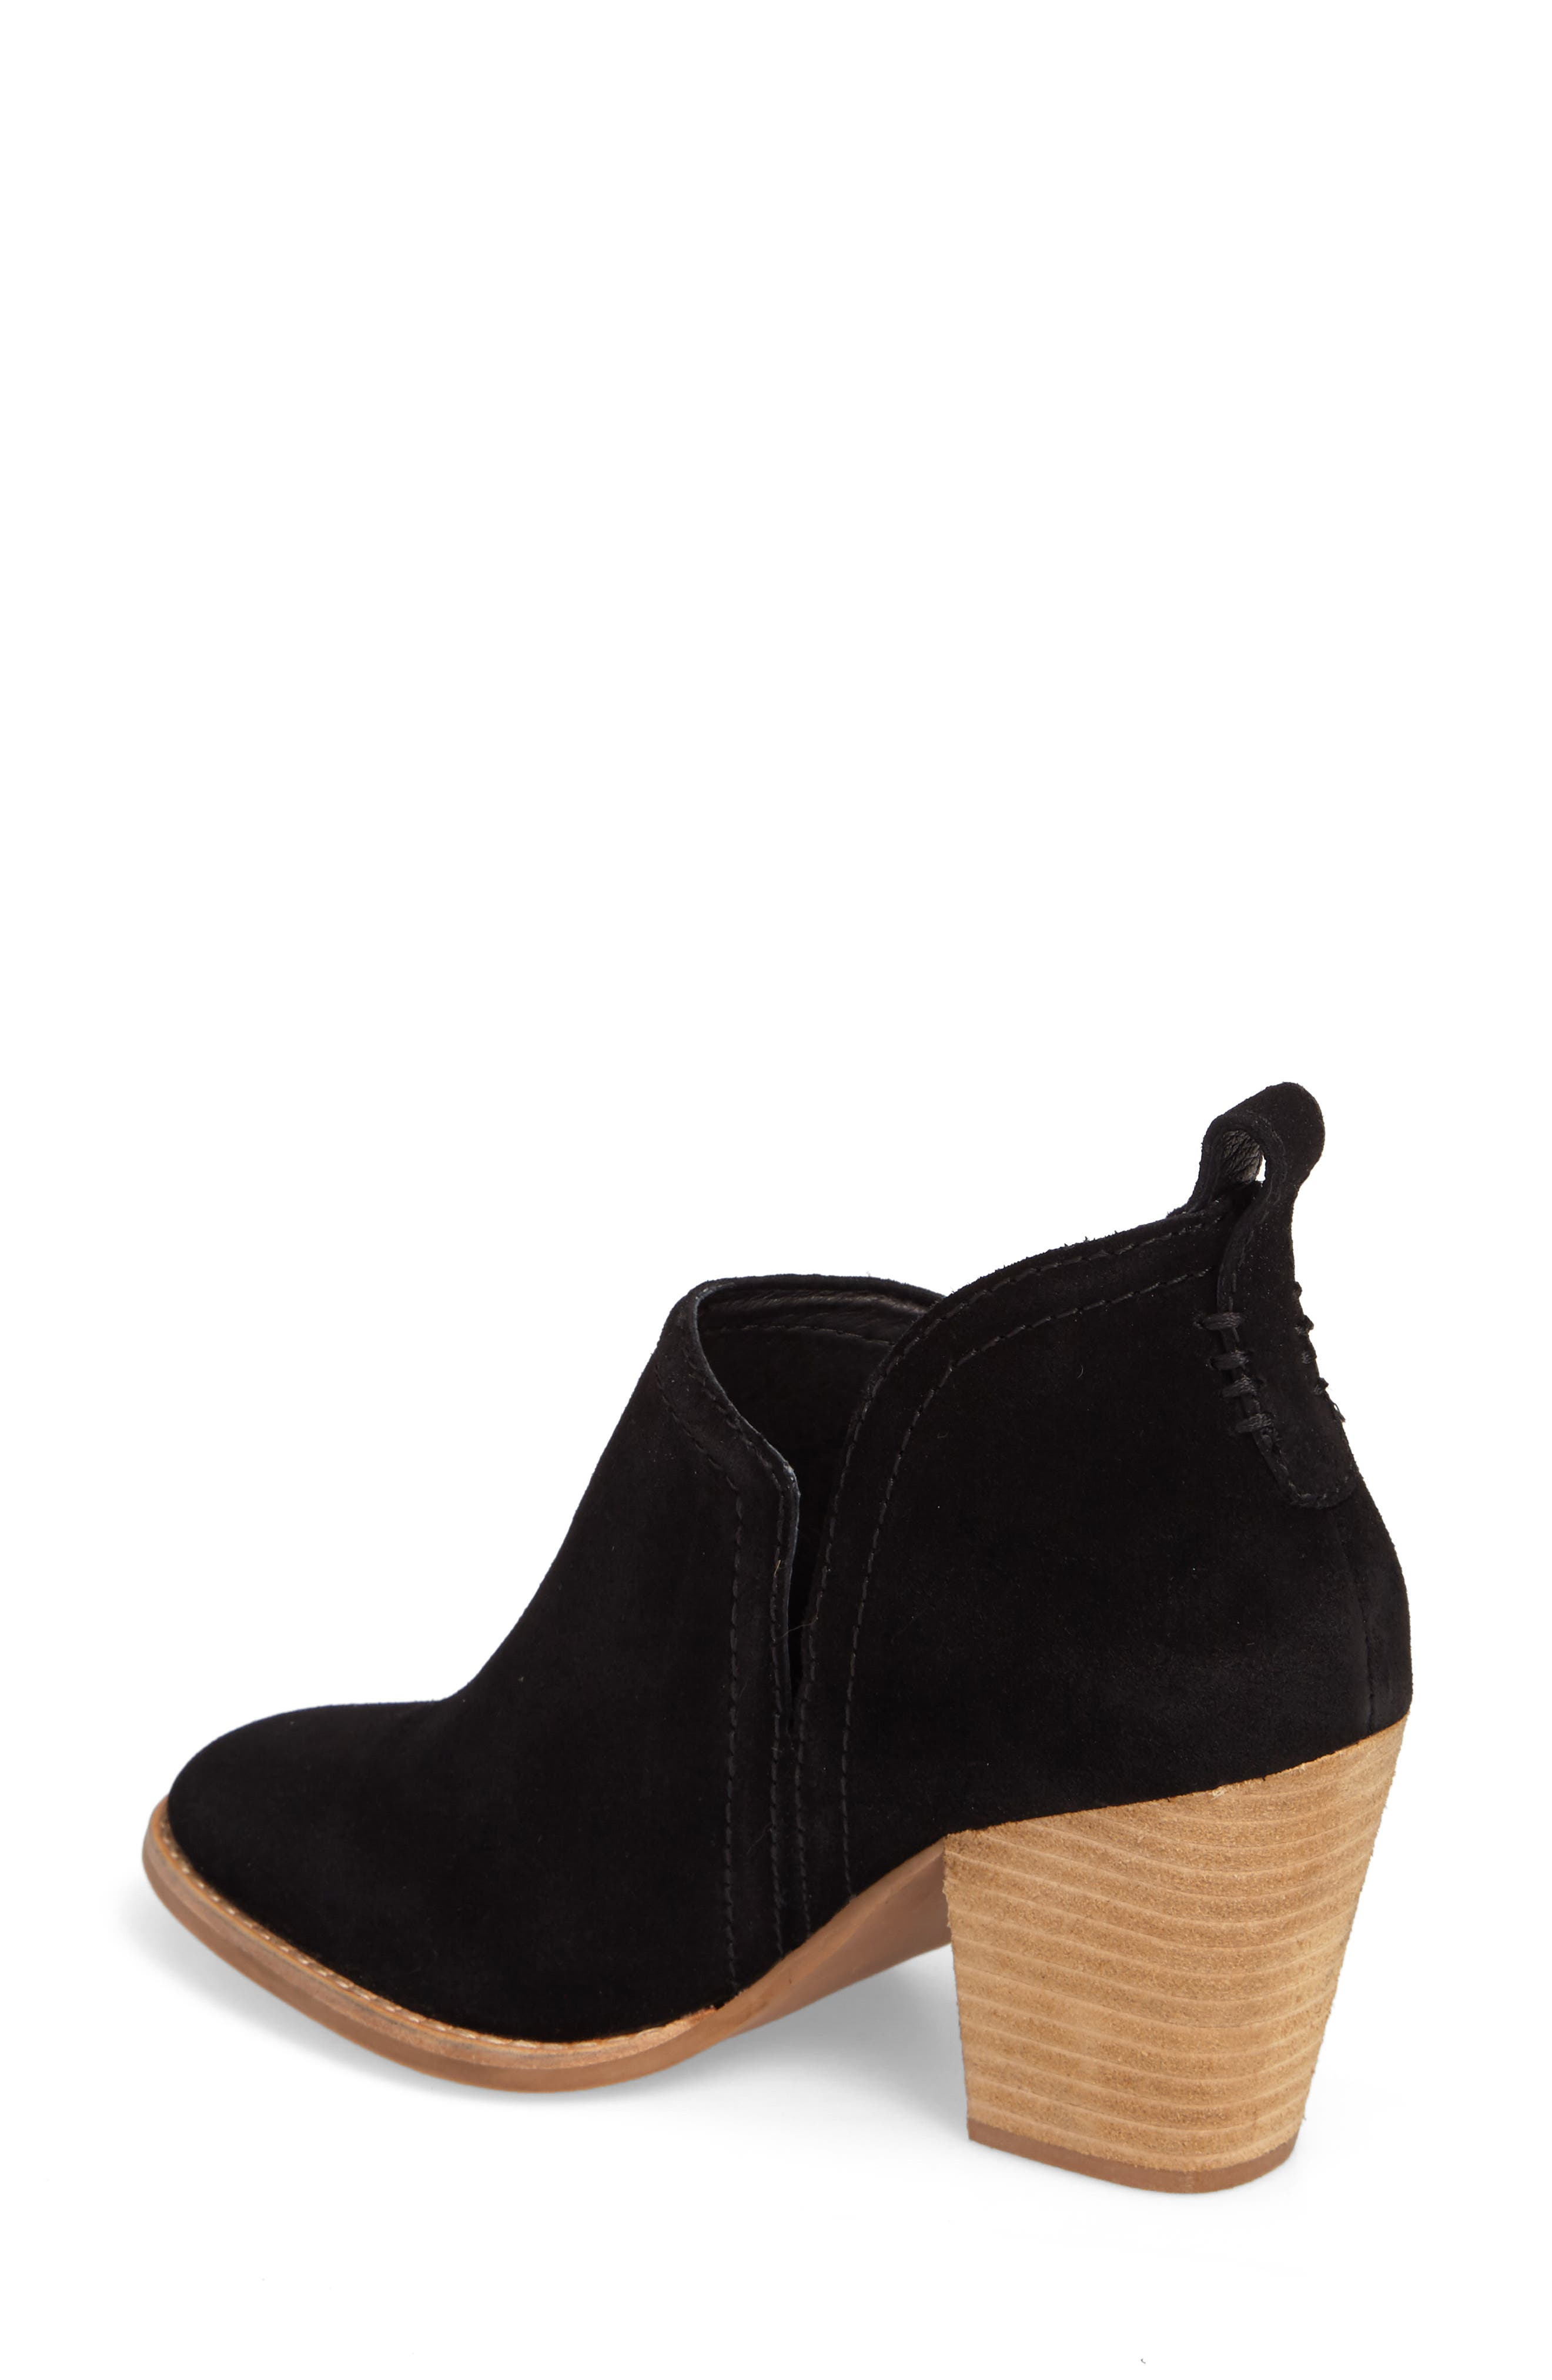 Rosalee Bootie,                             Alternate thumbnail 2, color,                             BLACK OILED SUEDE